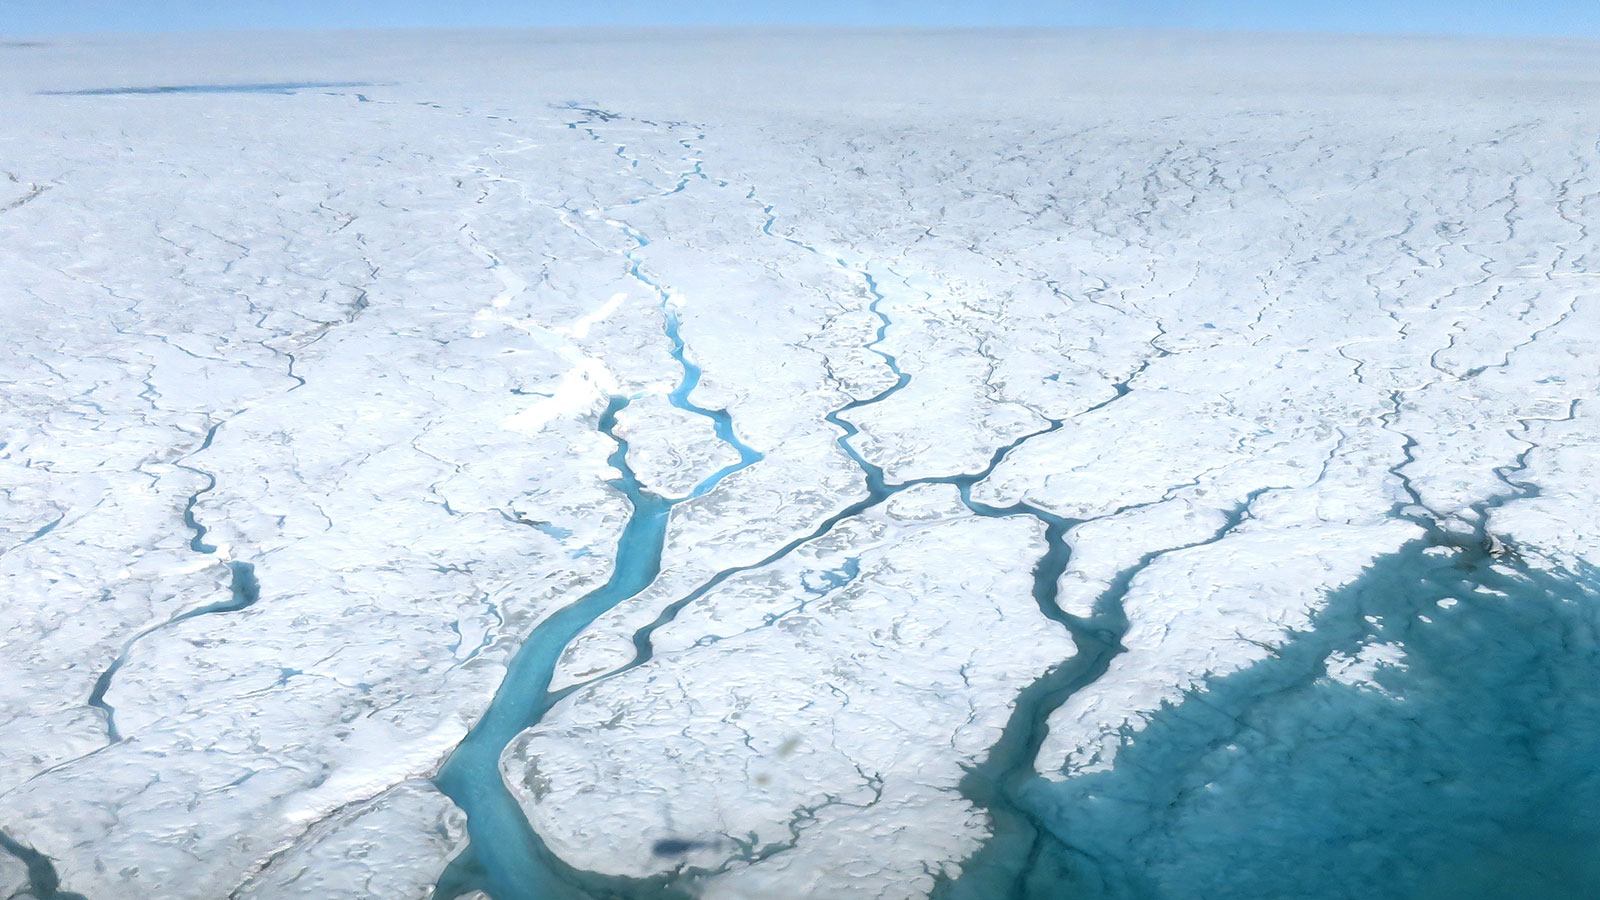 slide 1 - Aerial photograph of meltwater rivers over the Greenland Ice Sheet